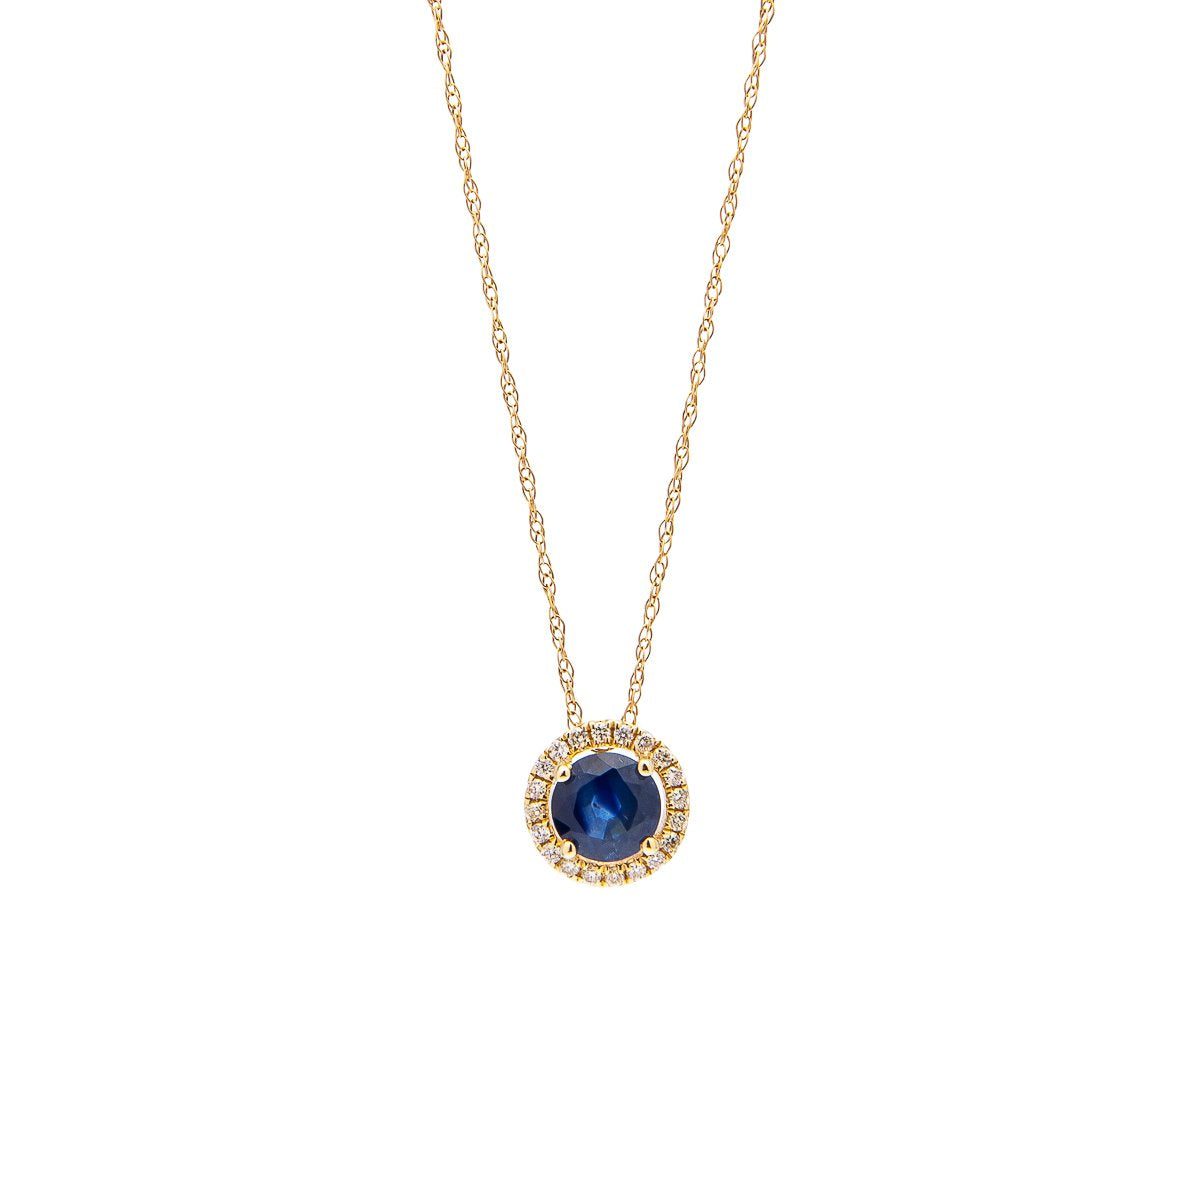 Sabel Collection 14K Yellow Gold Round Sapphire and Diamond Pendant